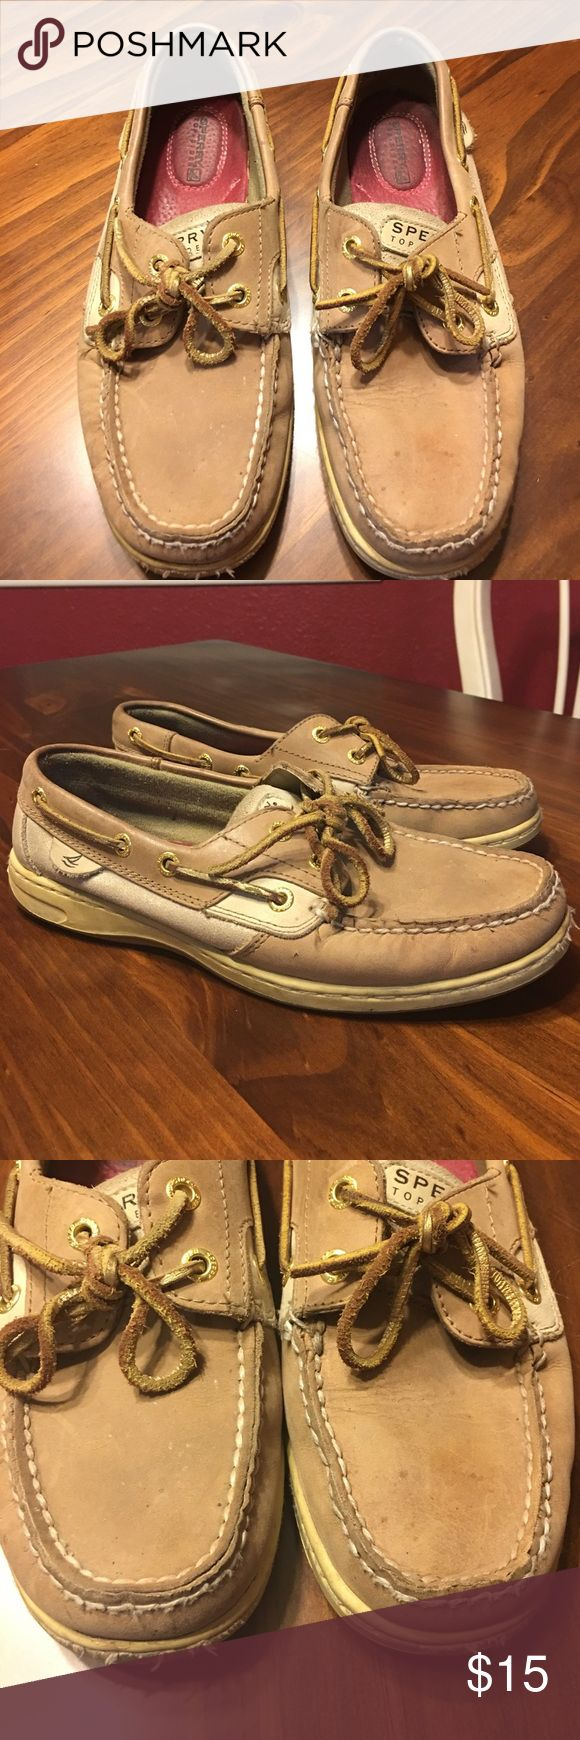 Sperry Top-Siders w/ Metallic Gold Gently used condition. They do show signs of wear as evident in the photos. There a few small water spots as shown in pics. Price reflects condition. Sperry Top-Sider Shoes